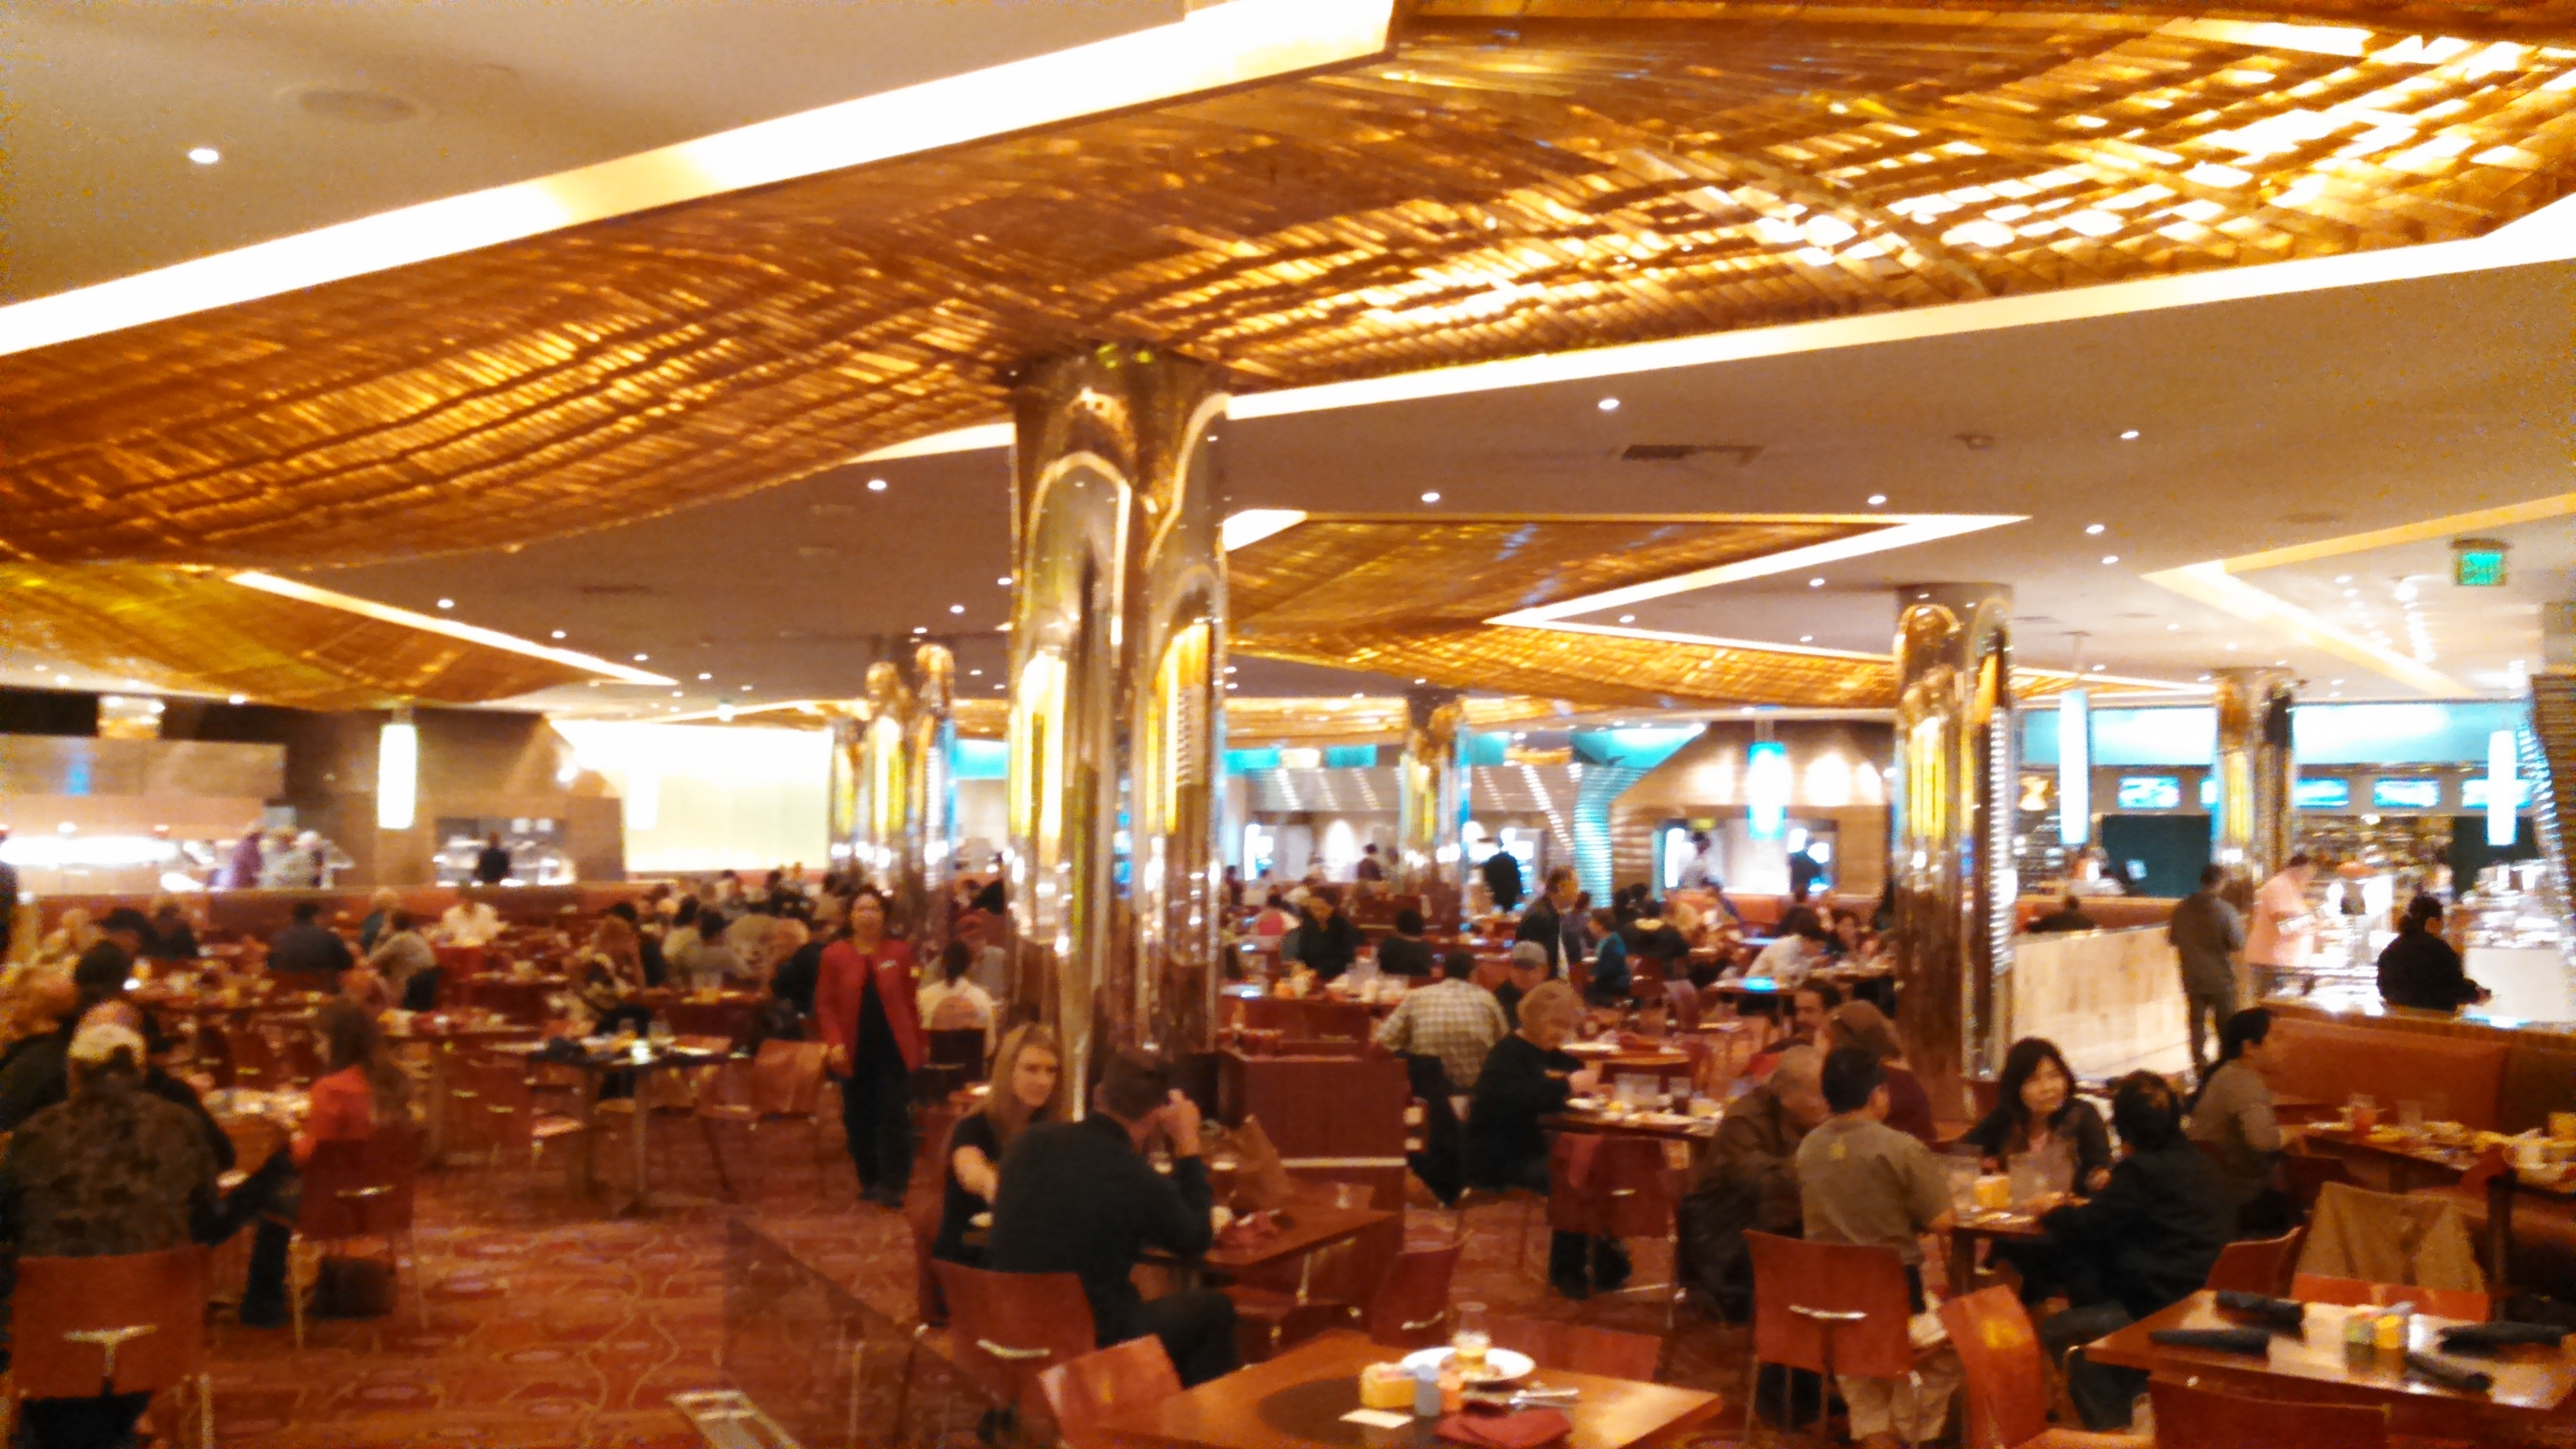 Cravings Buffet – The Mirage